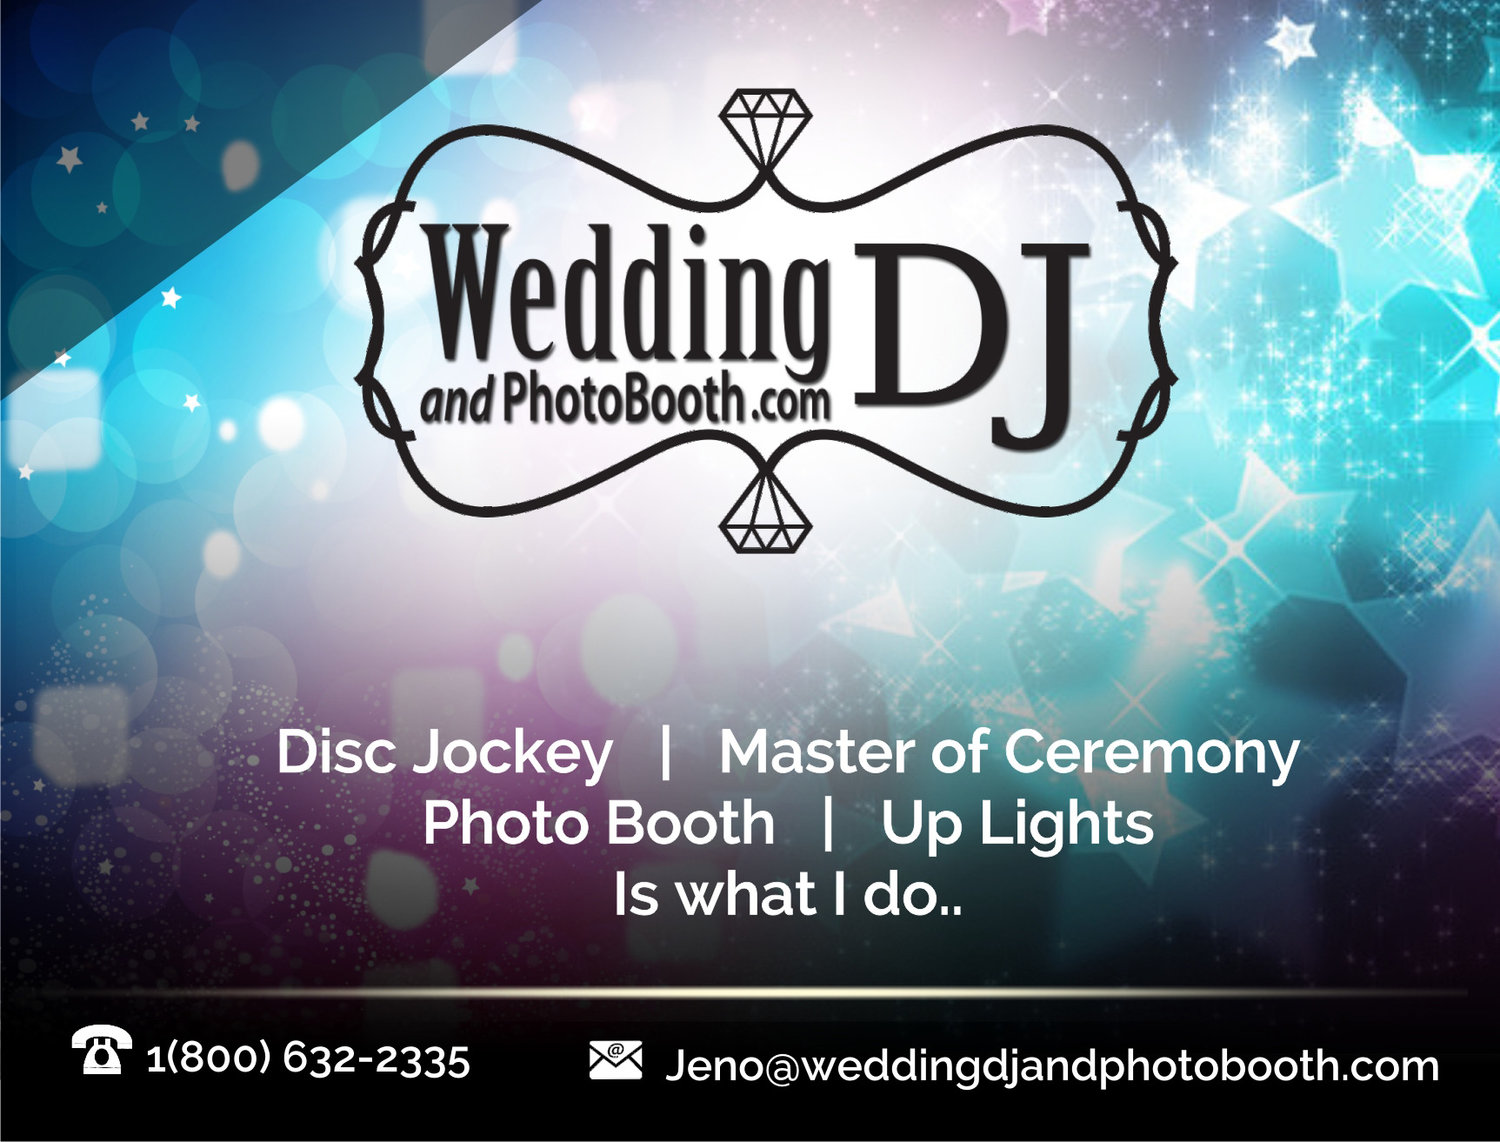 WeddingDJandPhotoBooth.com